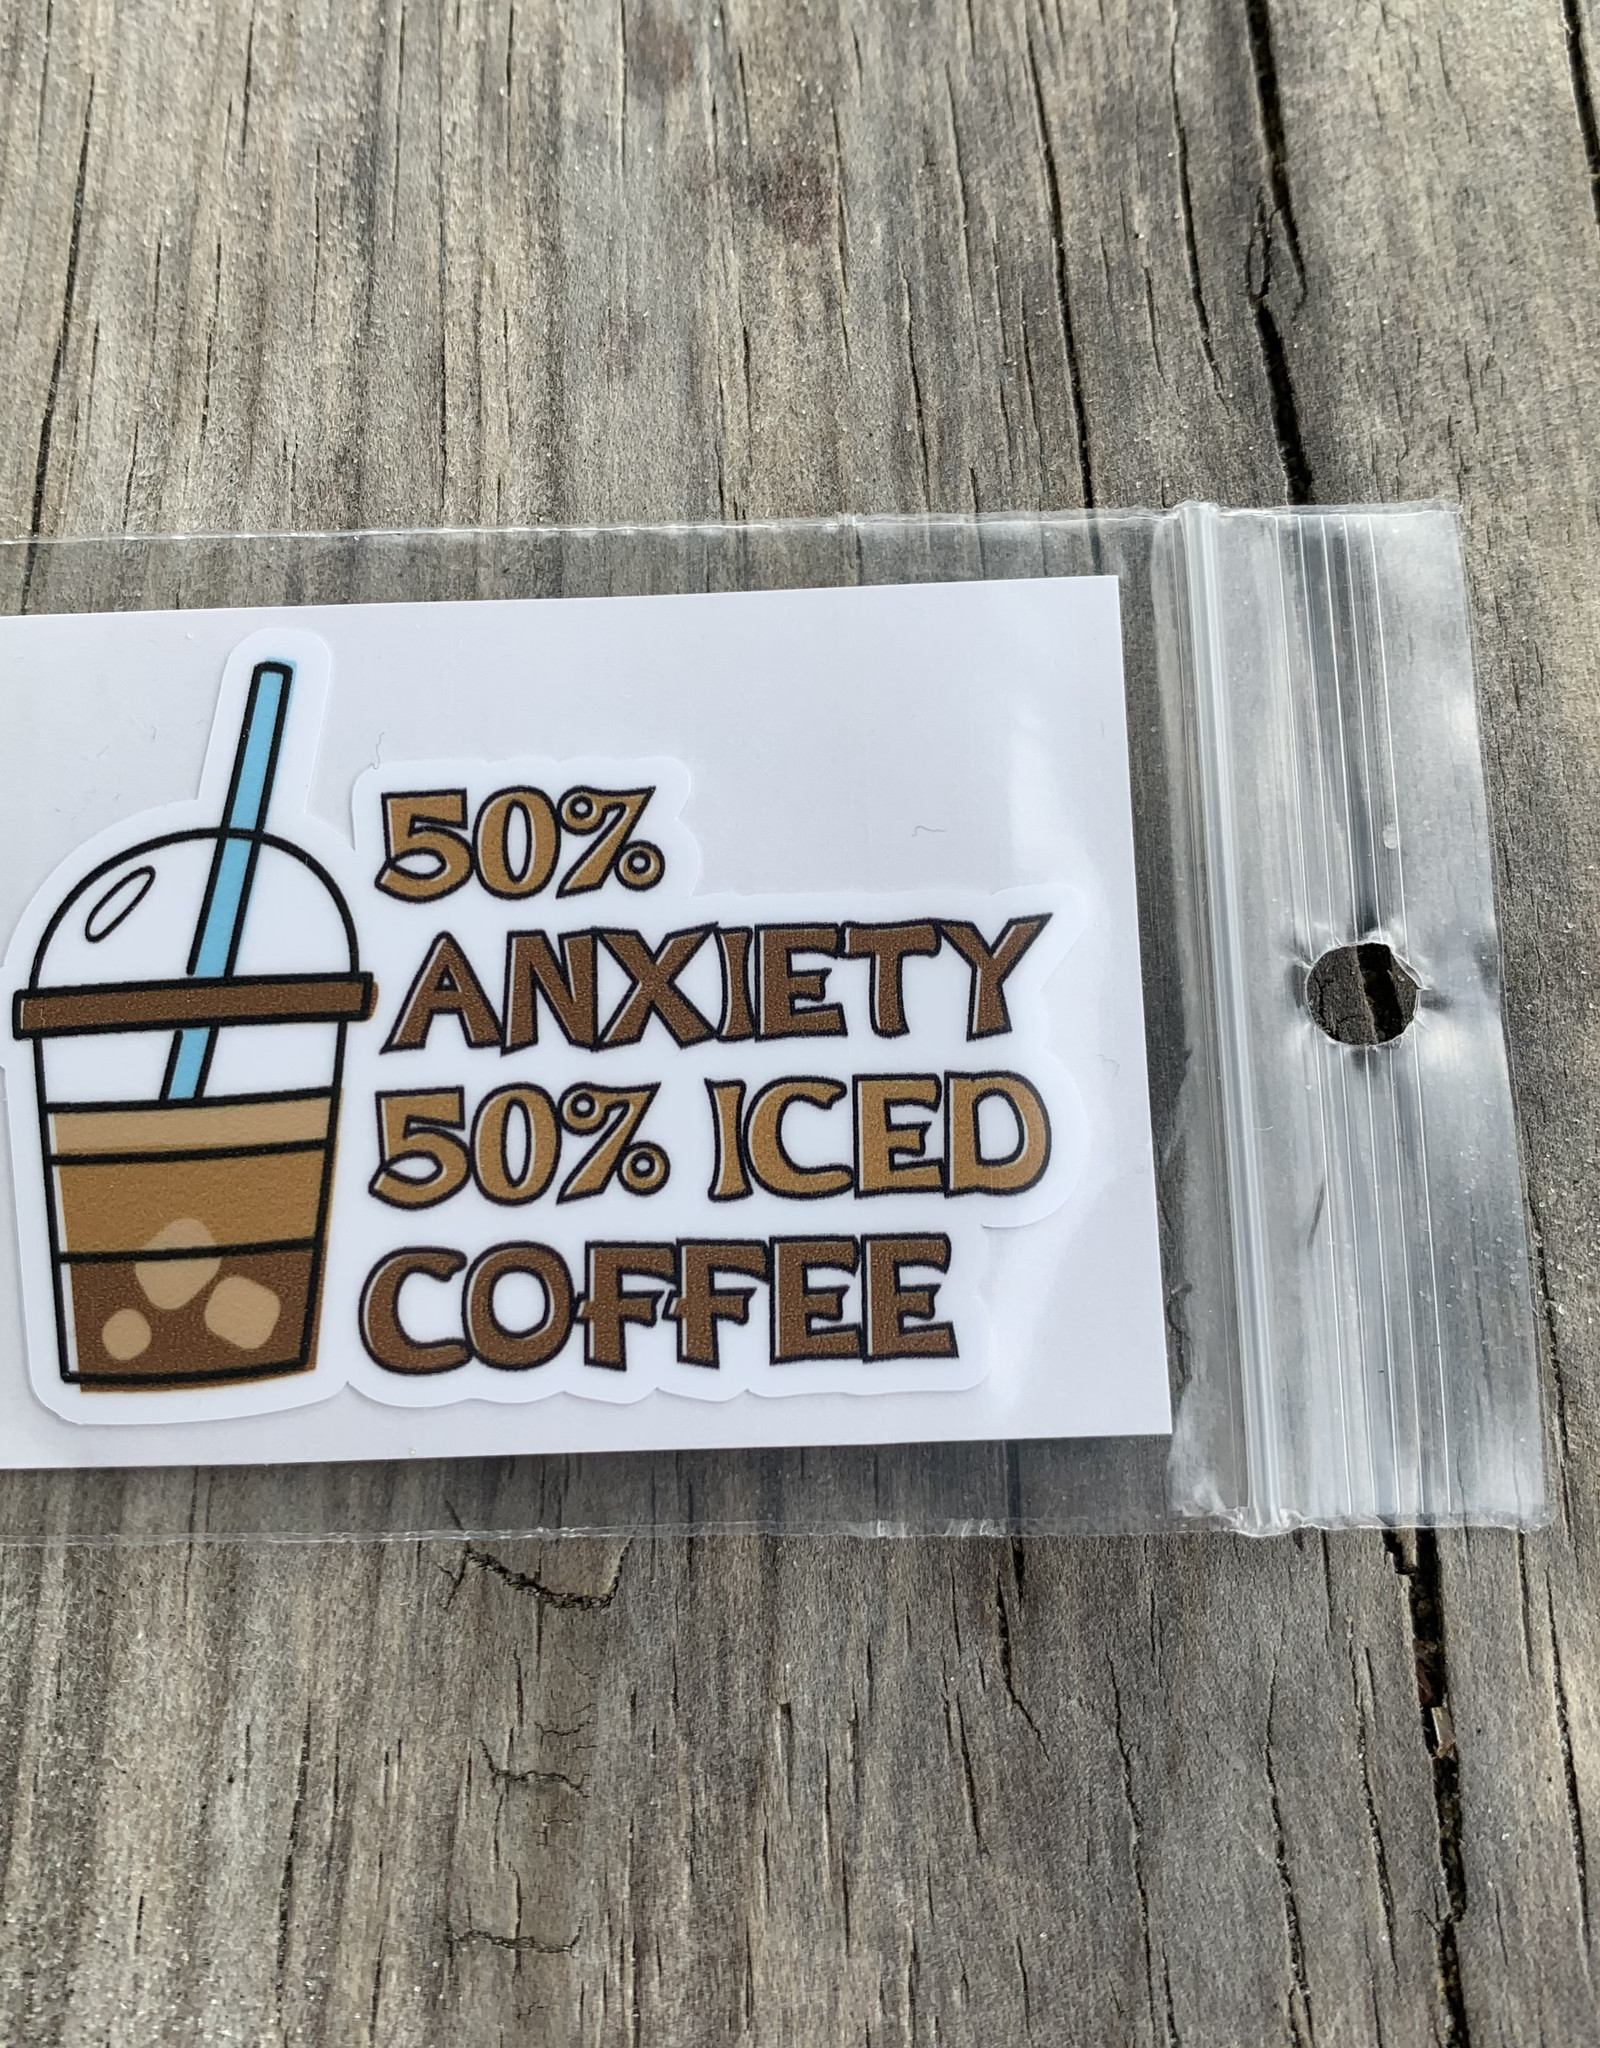 50% ANXIETY 50% COFFEE STICKER (CELL)